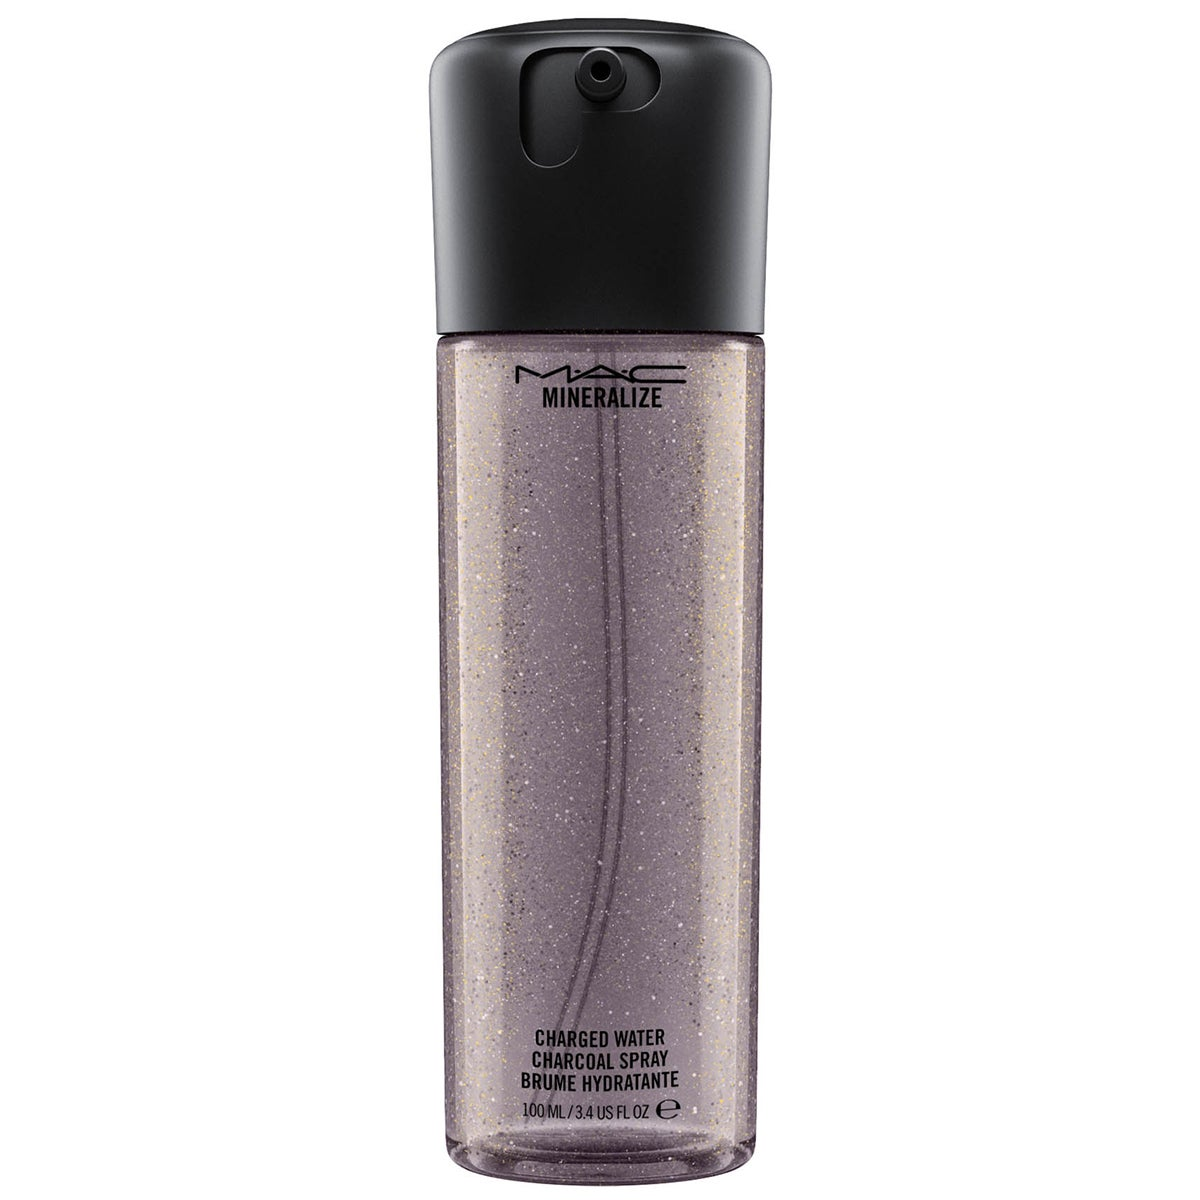 MAC Cosmetics Mineralize Charged Water Charcoal Spray